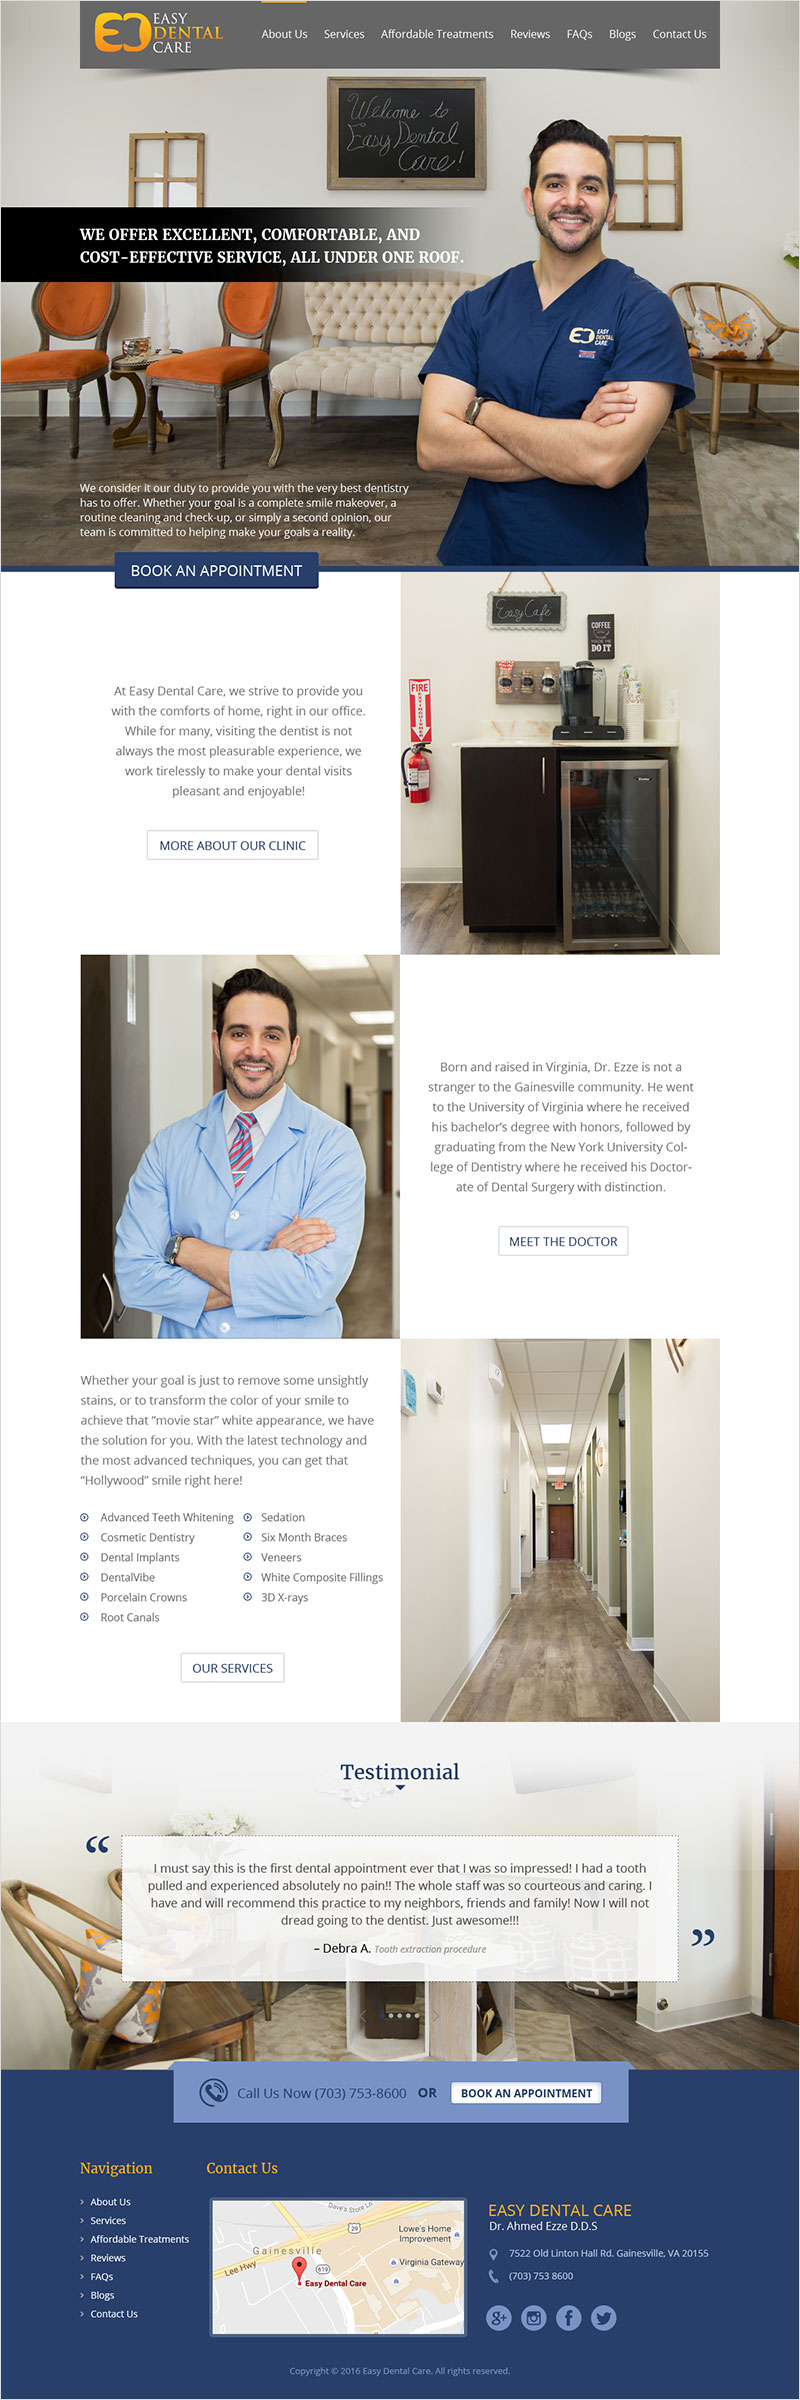 Easy Dental Care - Website Design